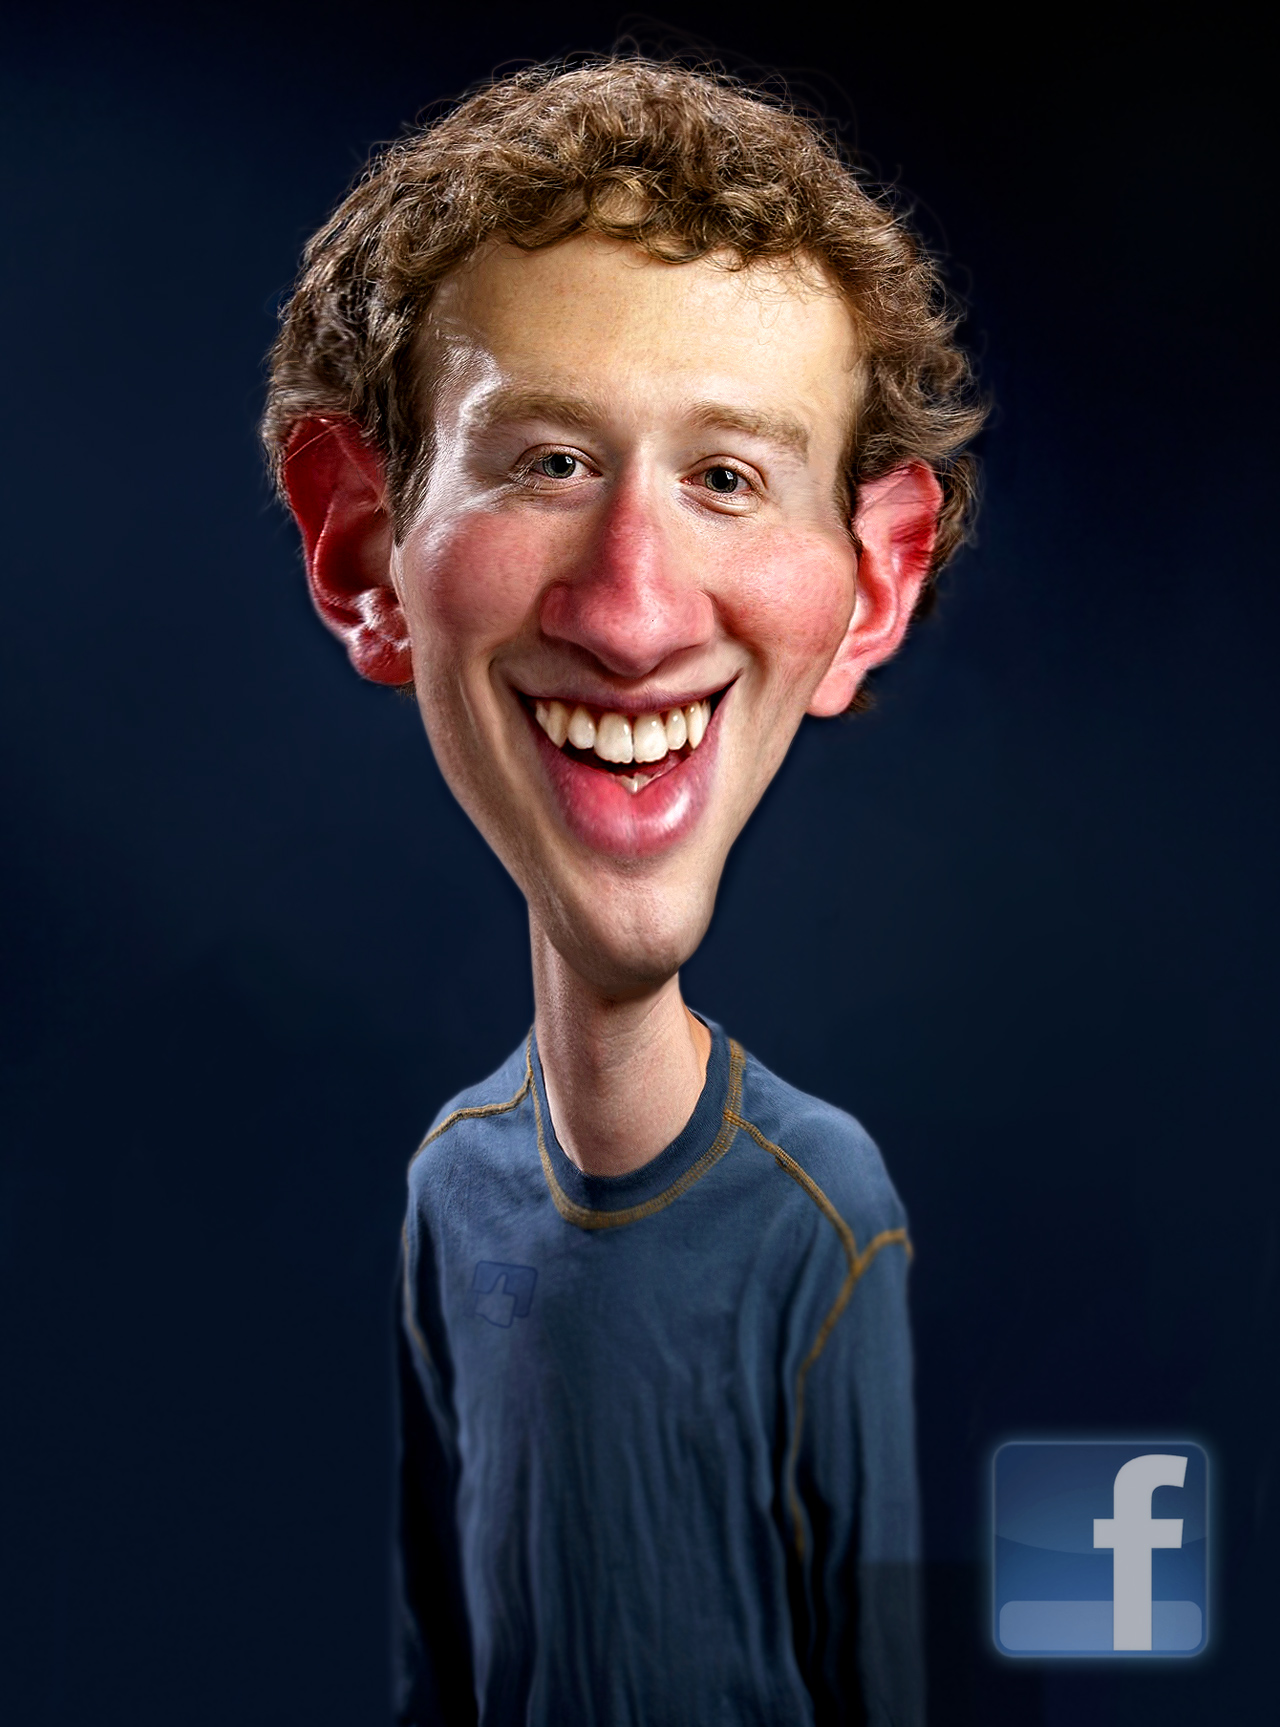 mark_zuckerberg___facebook_by_rwpike-d3extjr